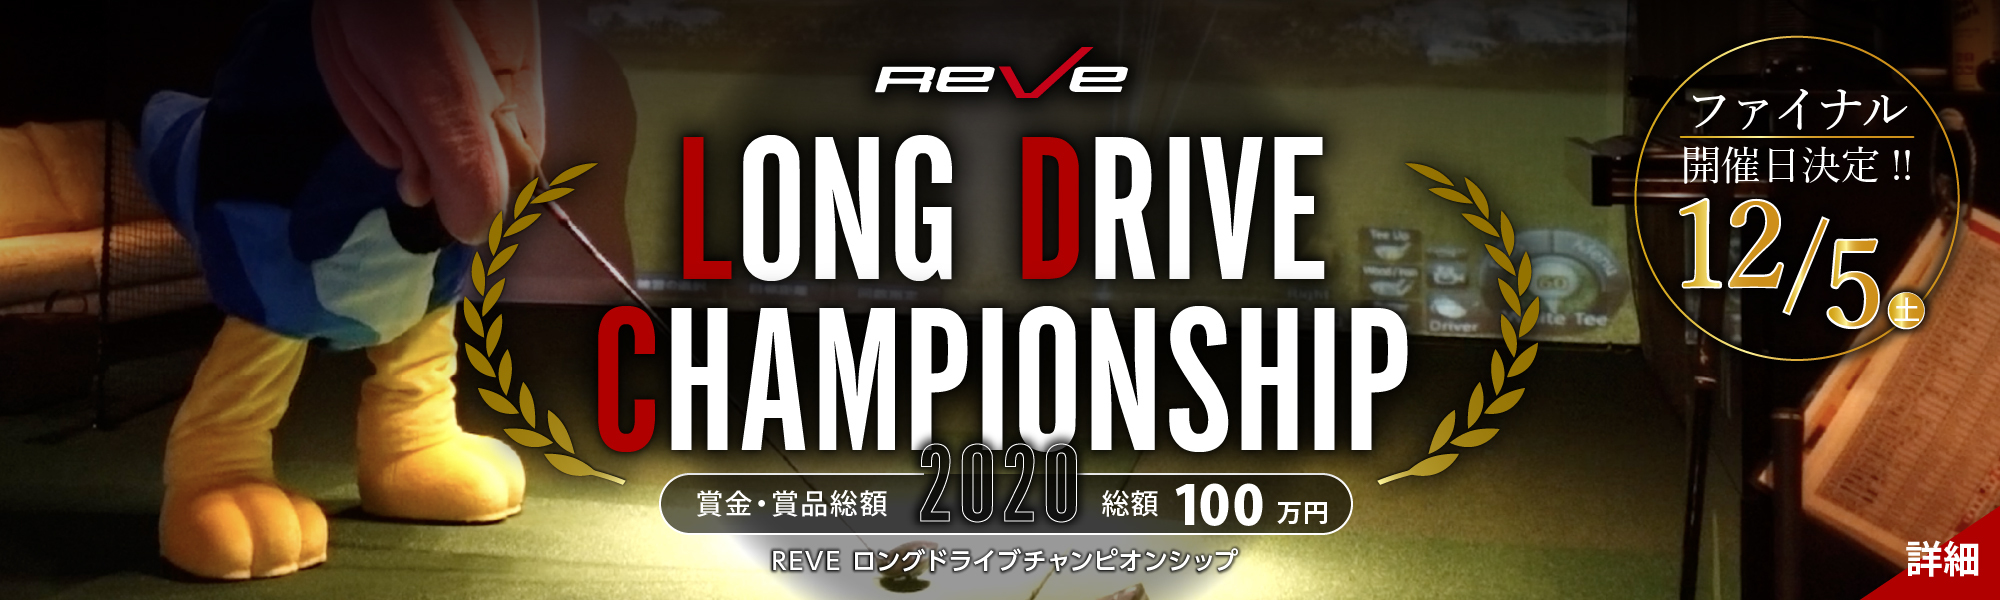 REVE LONG DRIVE CHAMPIONSHIP 2020 REVE ロングドライブチャンピオンシップ OPEN LEAGUE / LADIES LEAGUE